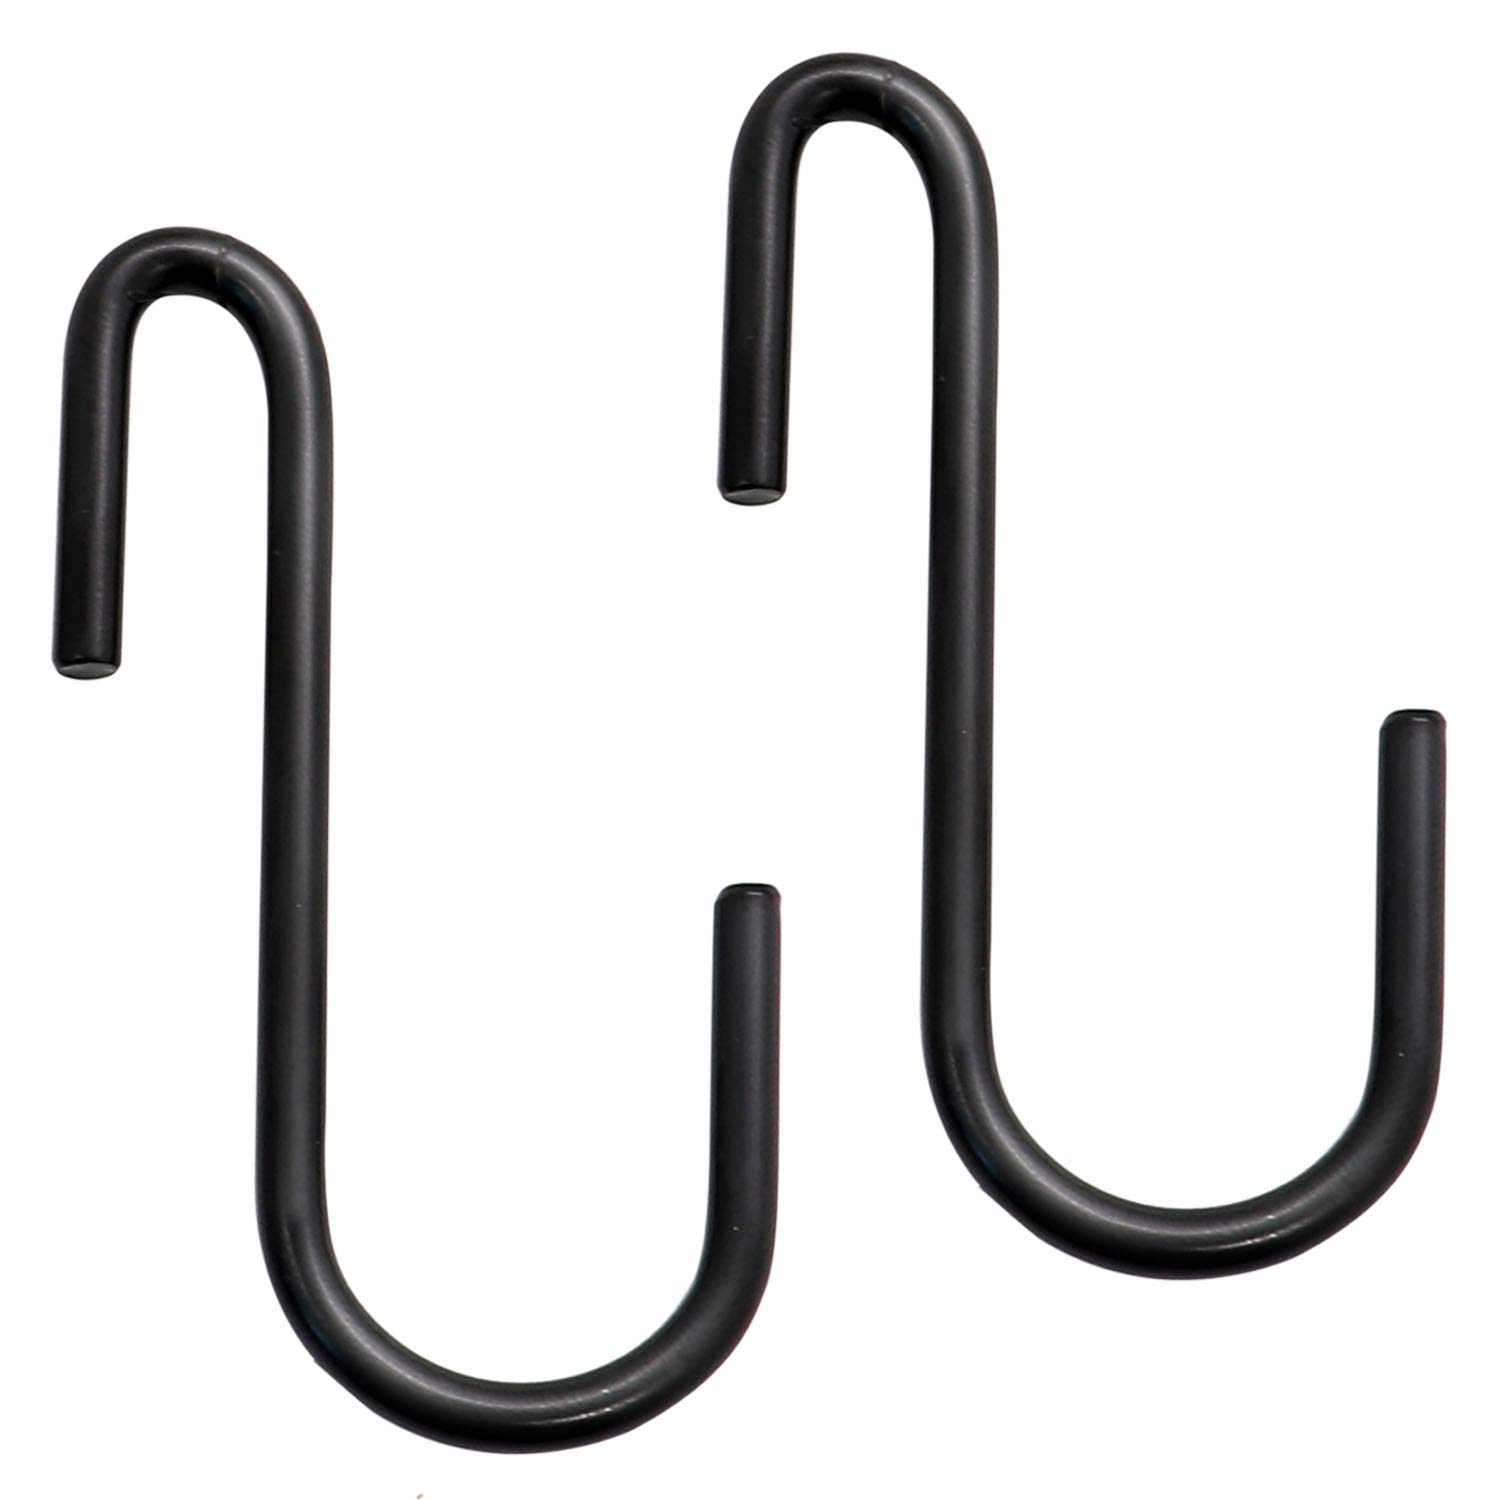 30 Pack Esfun Heavy Duty S Hooks Black S Shaped Hooks Hanging Hangers Pan Pot Holder Rack Hooks for Kitchenware Spoons Pans Pots Utensils Clothes Bags Towels Plants …